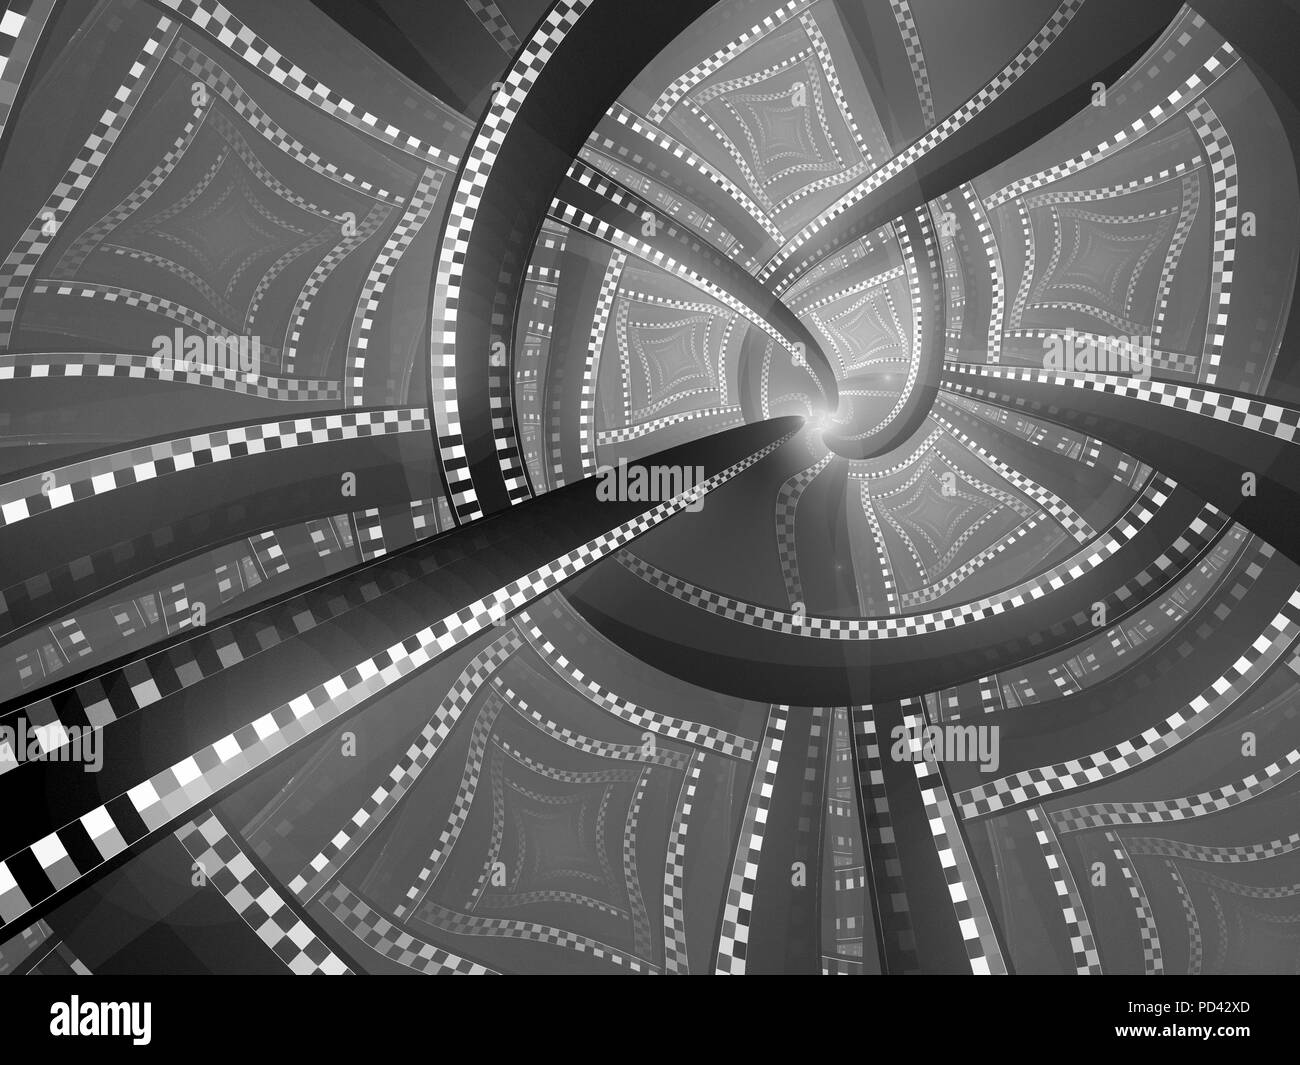 Blue technological singularity fractal, computer generated abstract background - Stock Image